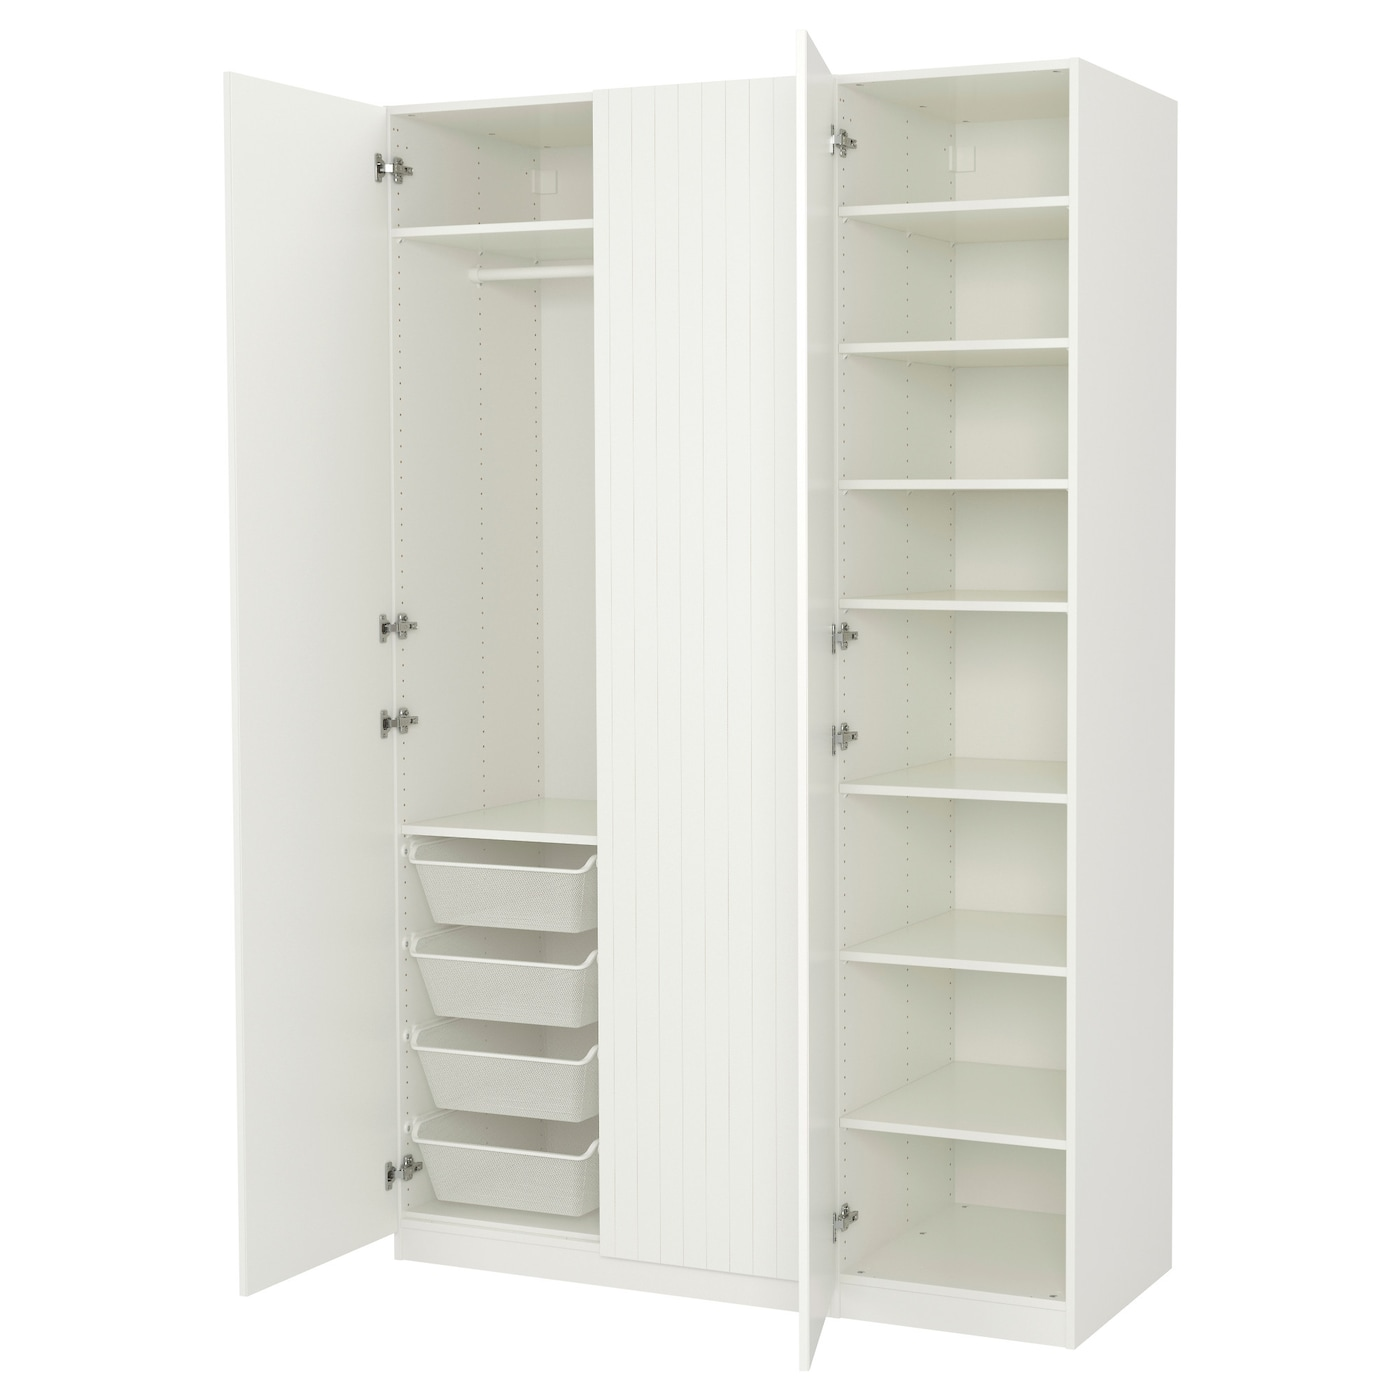 pax wardrobe white marnardal striped white beige 150x60x236 cm ikea. Black Bedroom Furniture Sets. Home Design Ideas